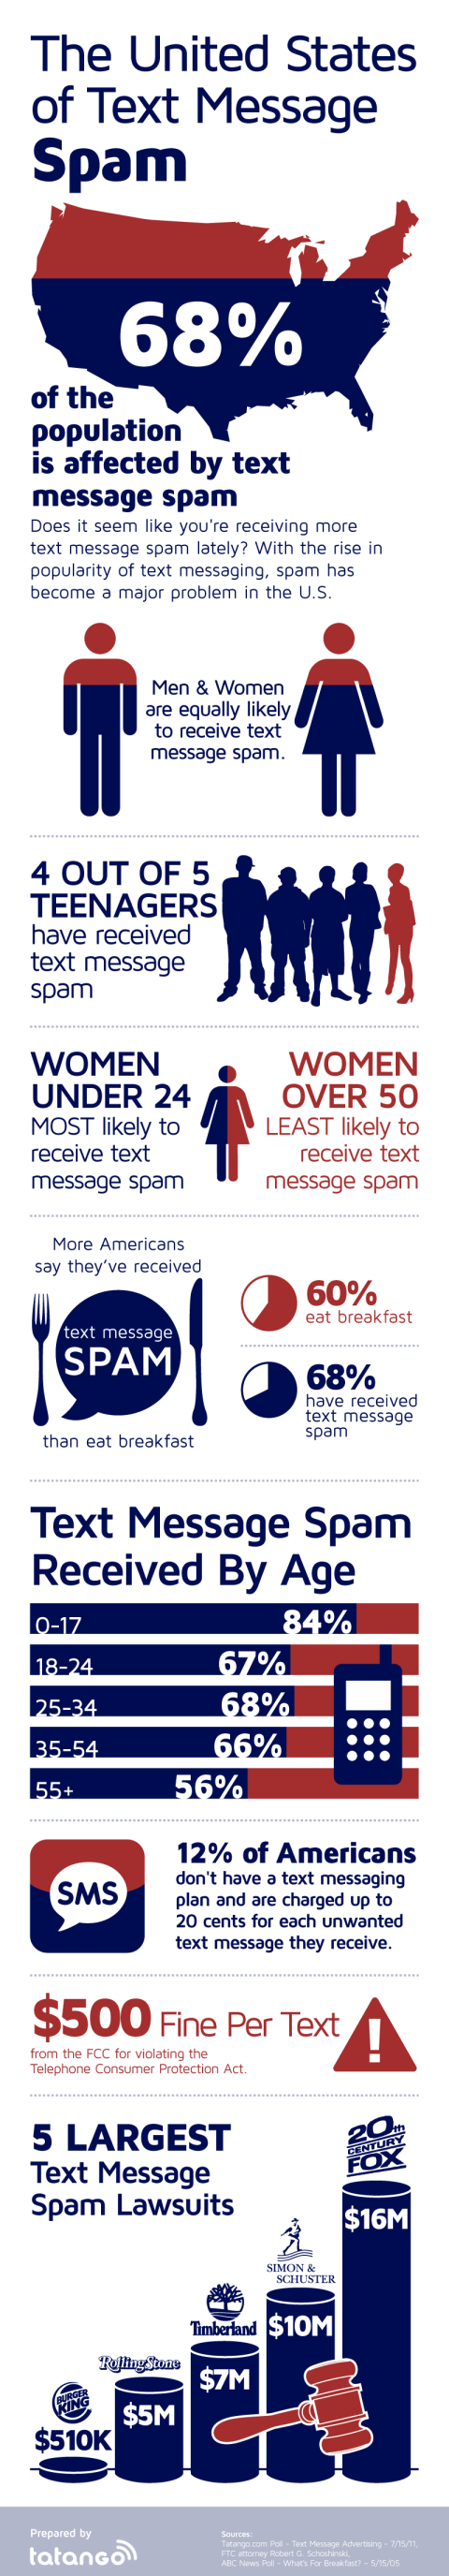 Text-Message-Spam-Infographic-SMS SPAM mobile marketing SMS Marketing SPAM FCC